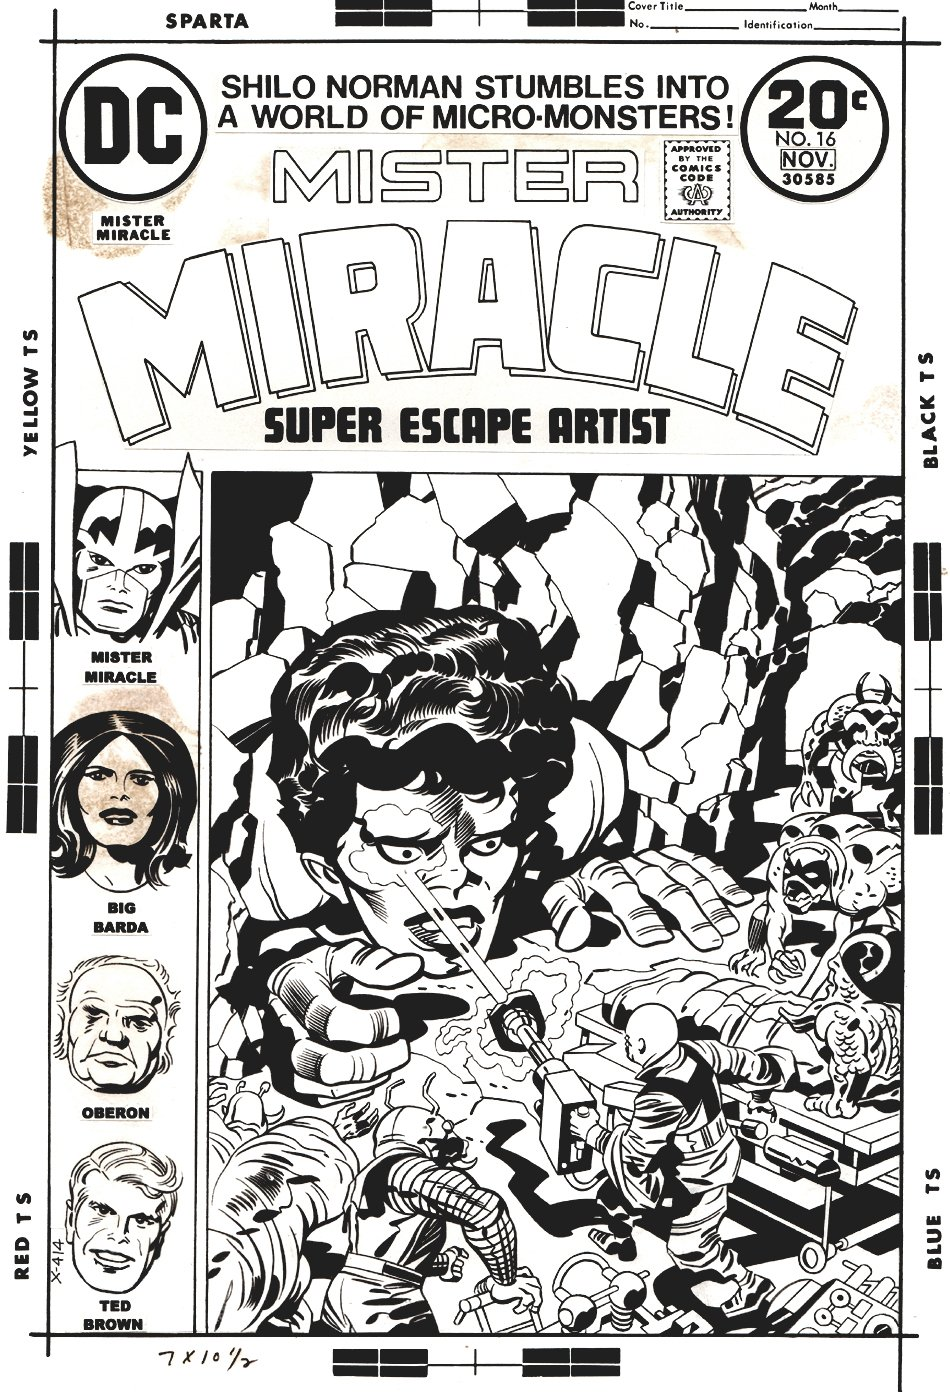 Mister Miracle #16 Cover (1973)